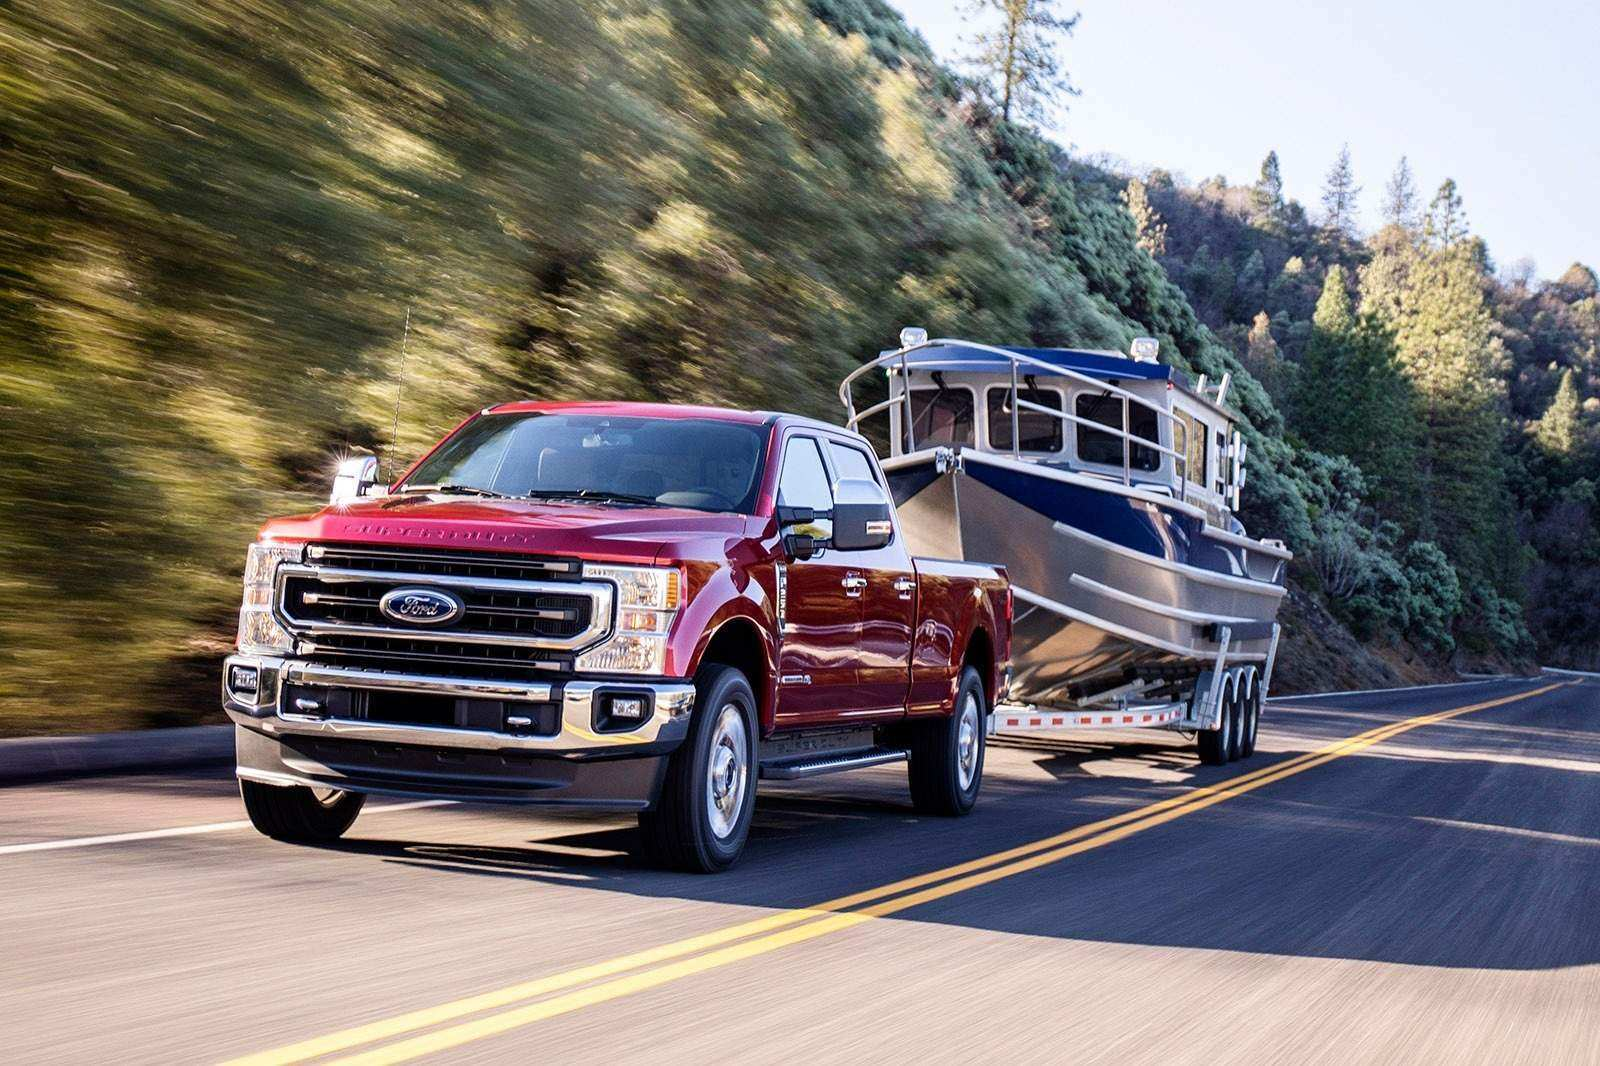 43 Best Review Ford Diesel 2020 Review for Ford Diesel 2020